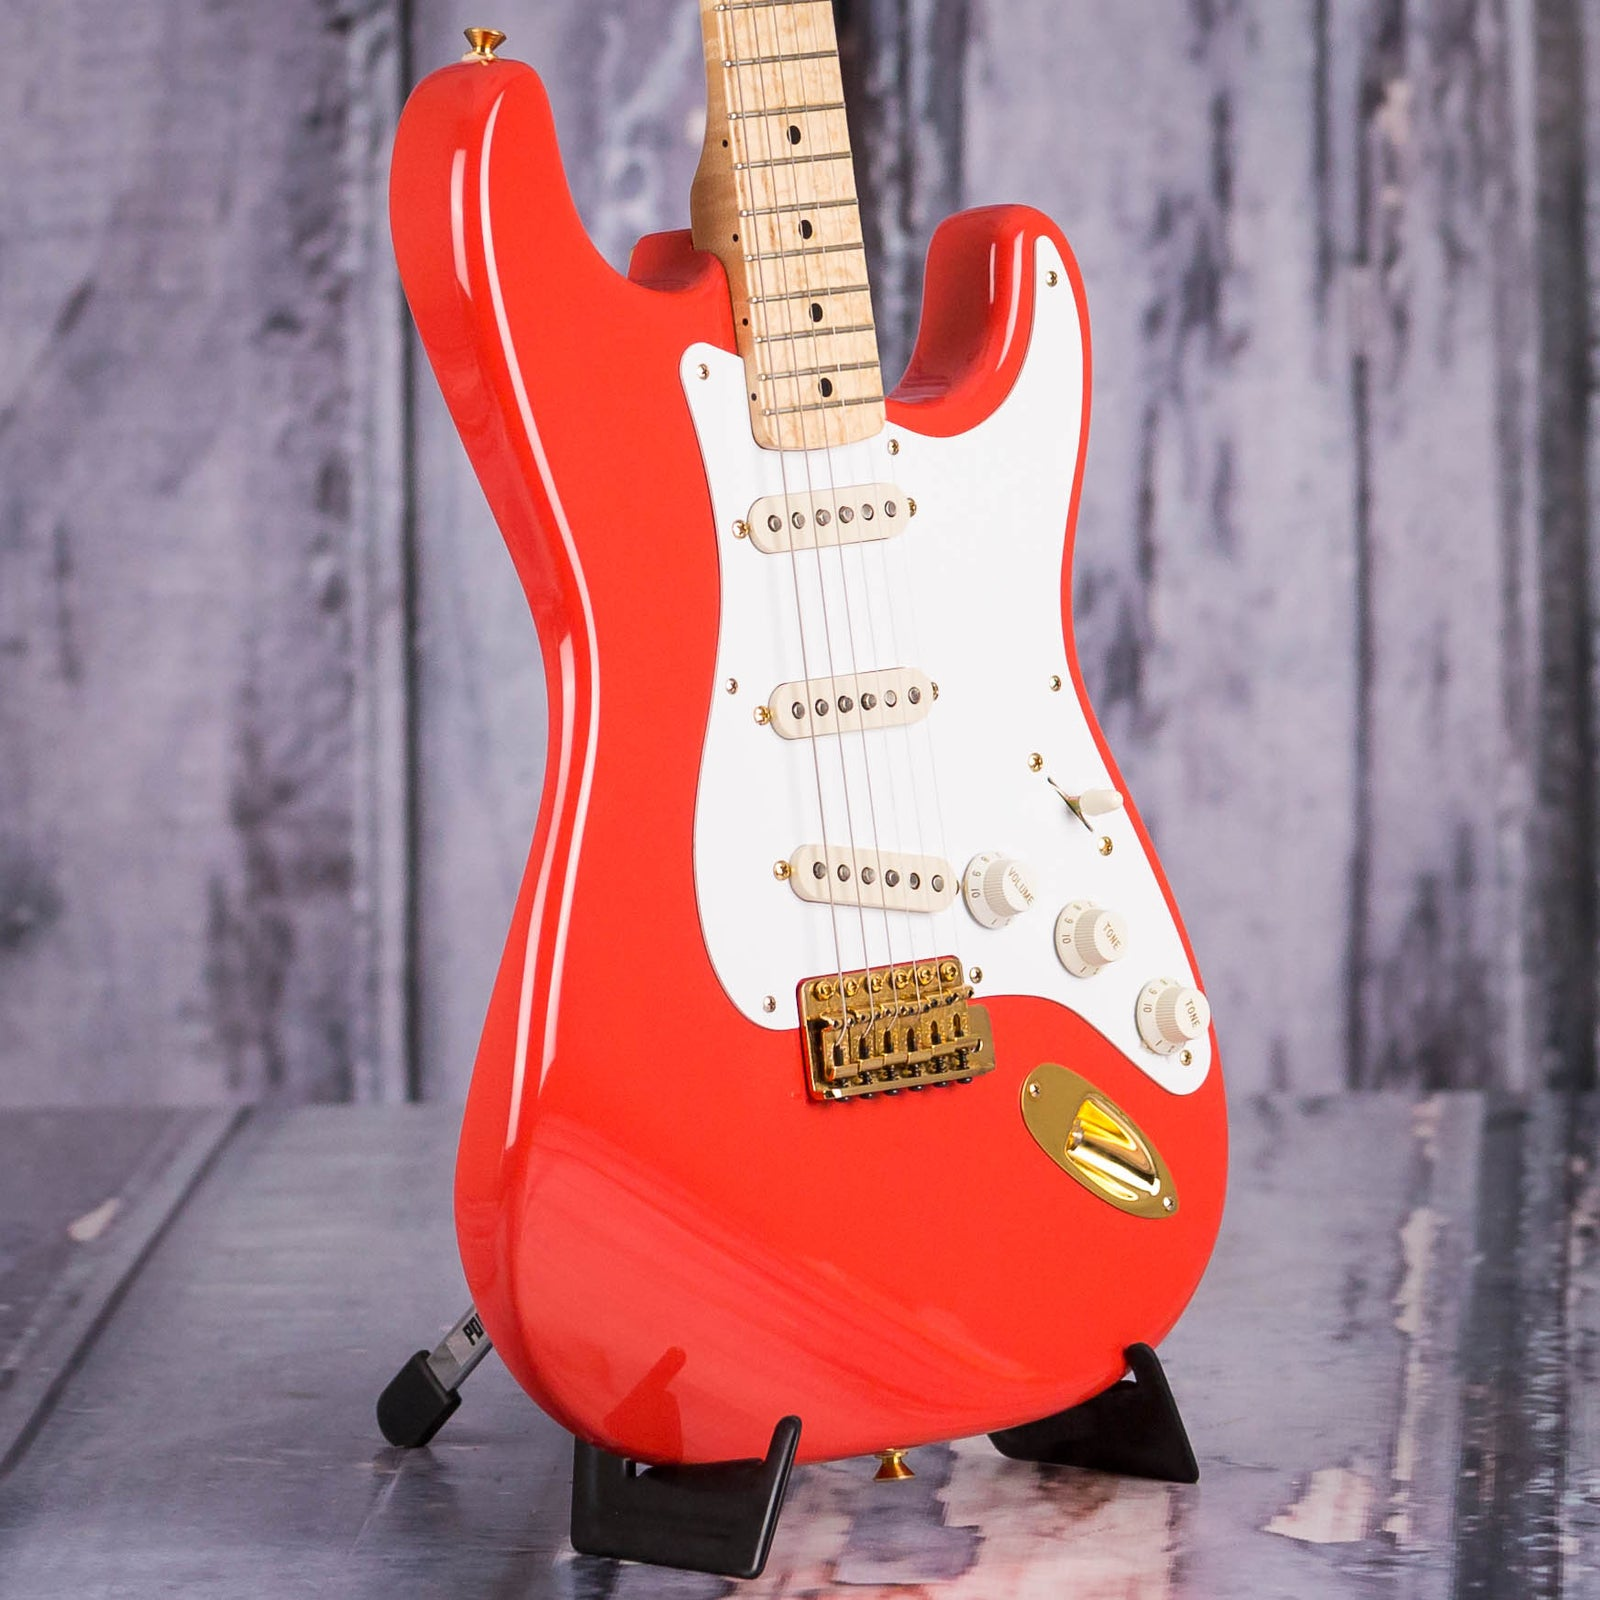 used 1996 fender custom shop 39 58 reissue stratocaster fiesta red for sale replay guitar. Black Bedroom Furniture Sets. Home Design Ideas